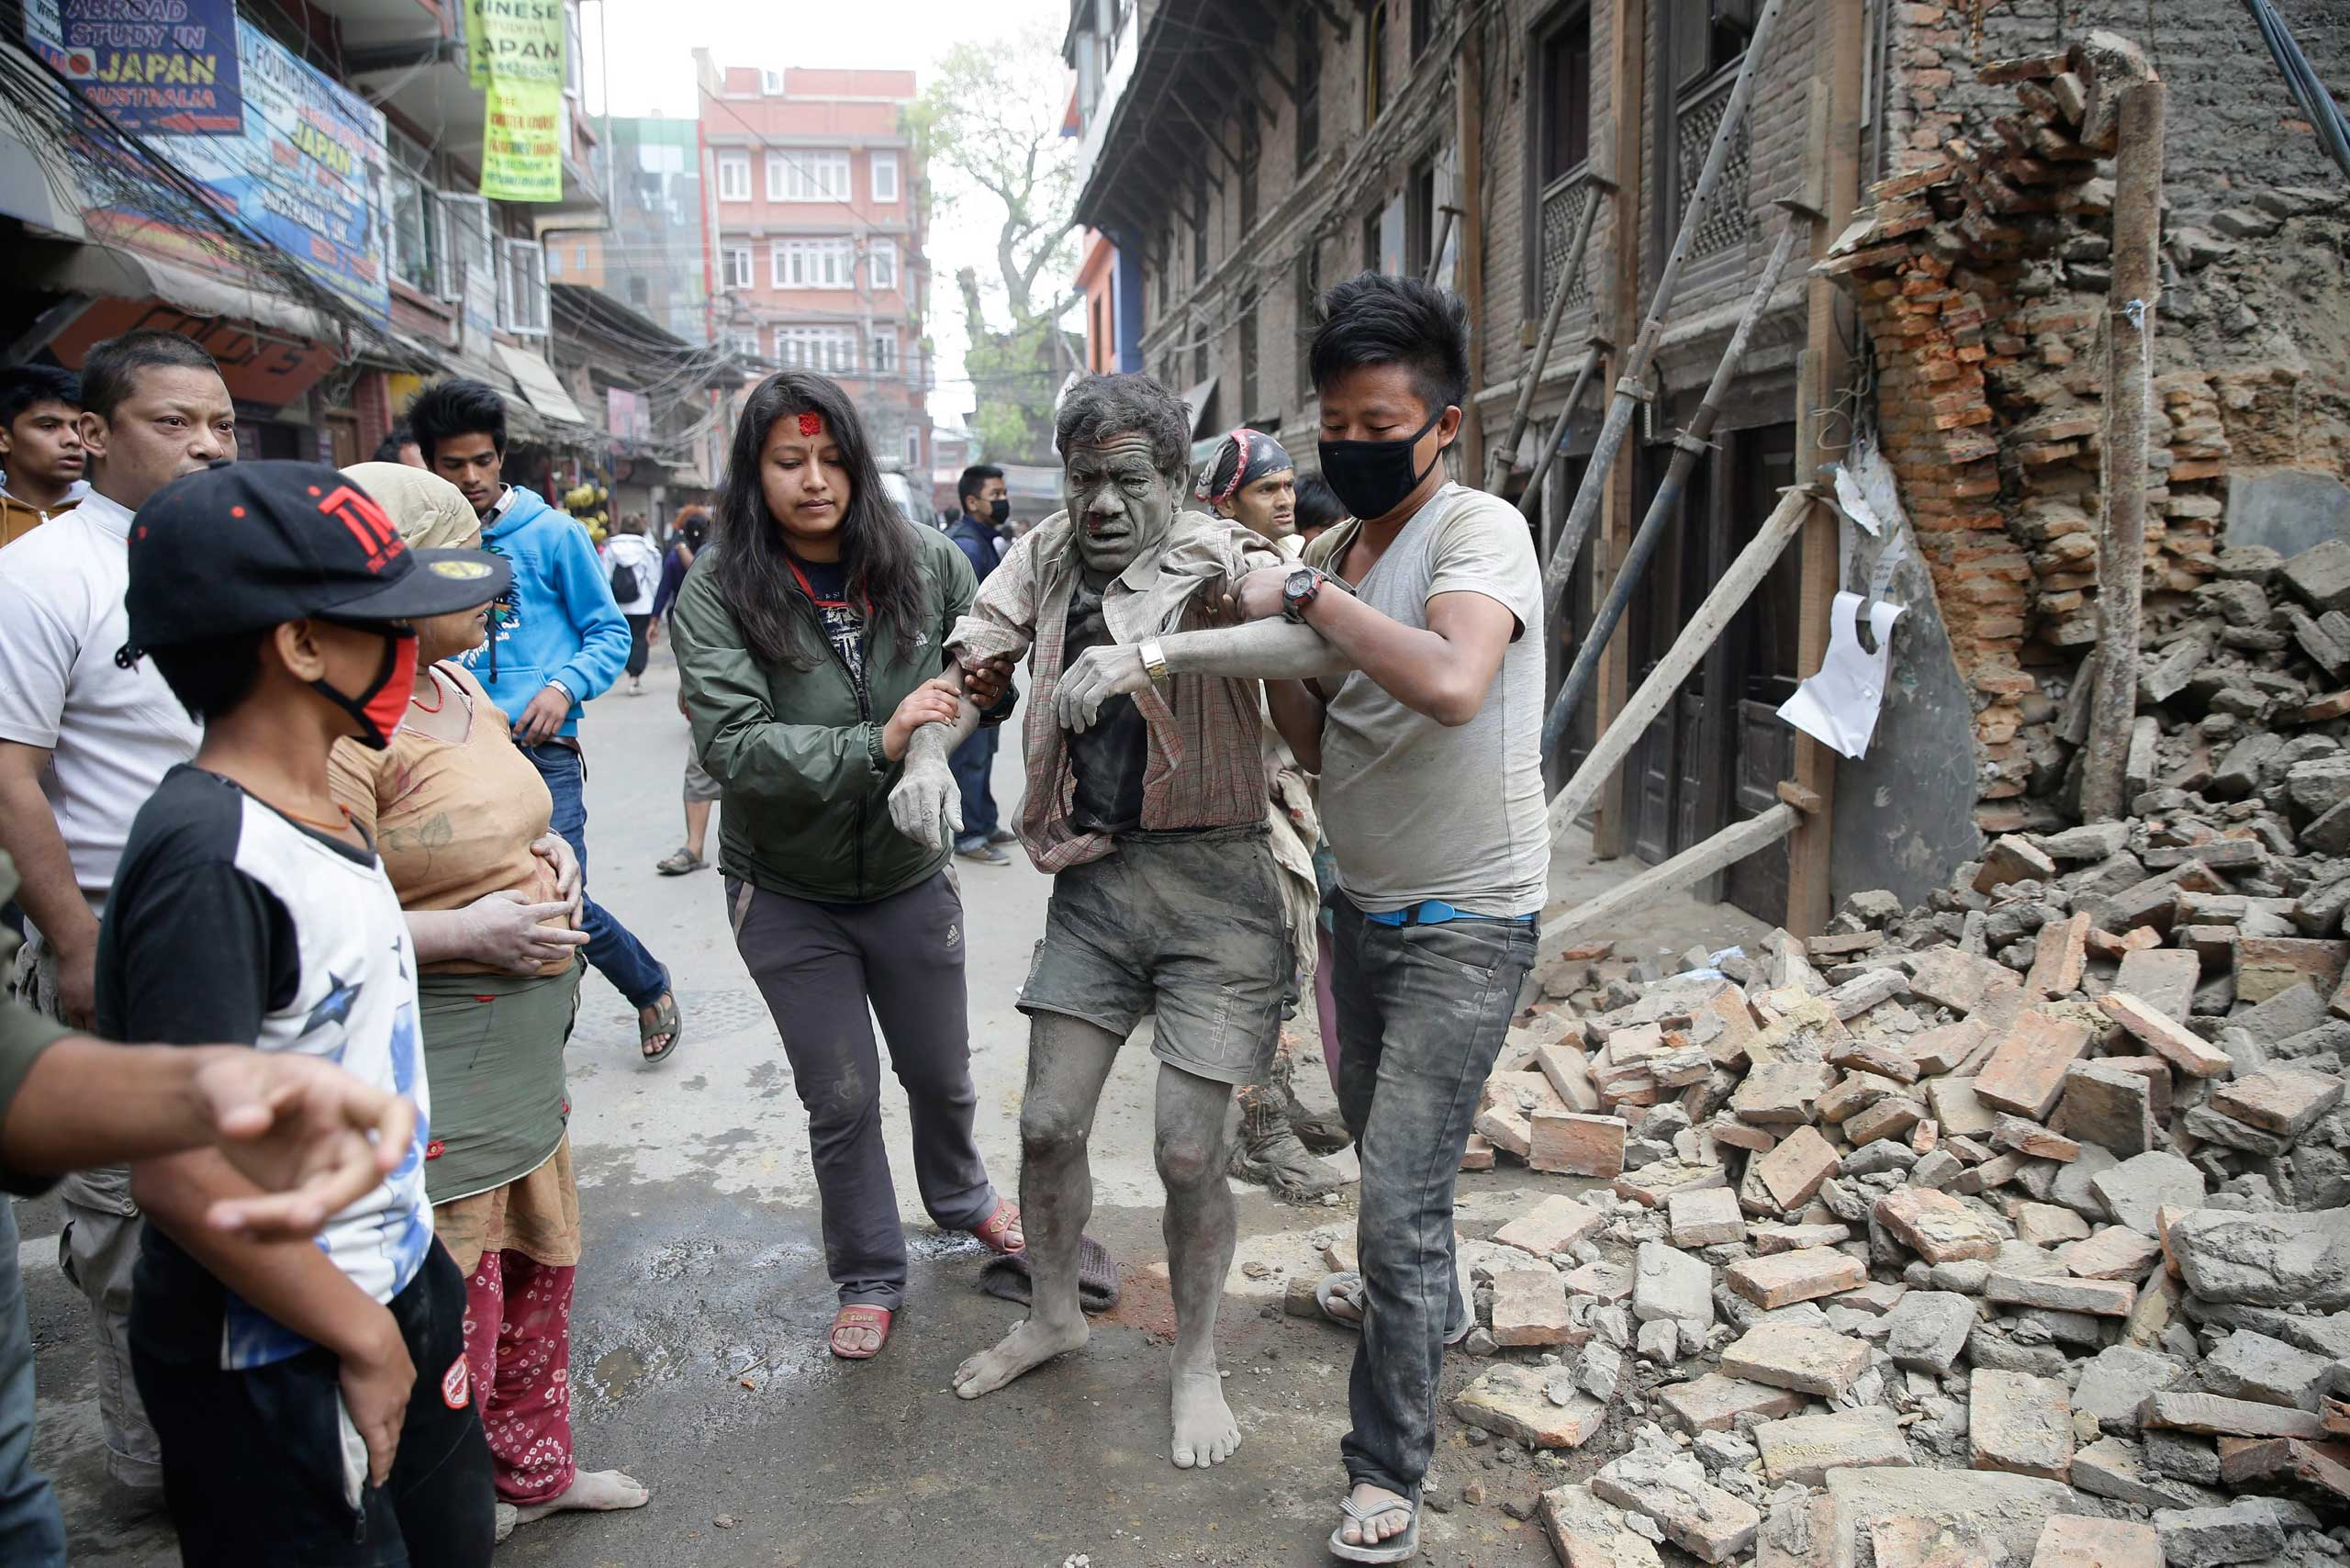 People free a man from the rubble of a destroyed building after an earthquake in Kathmandu, Nepal on April 25, 2015.